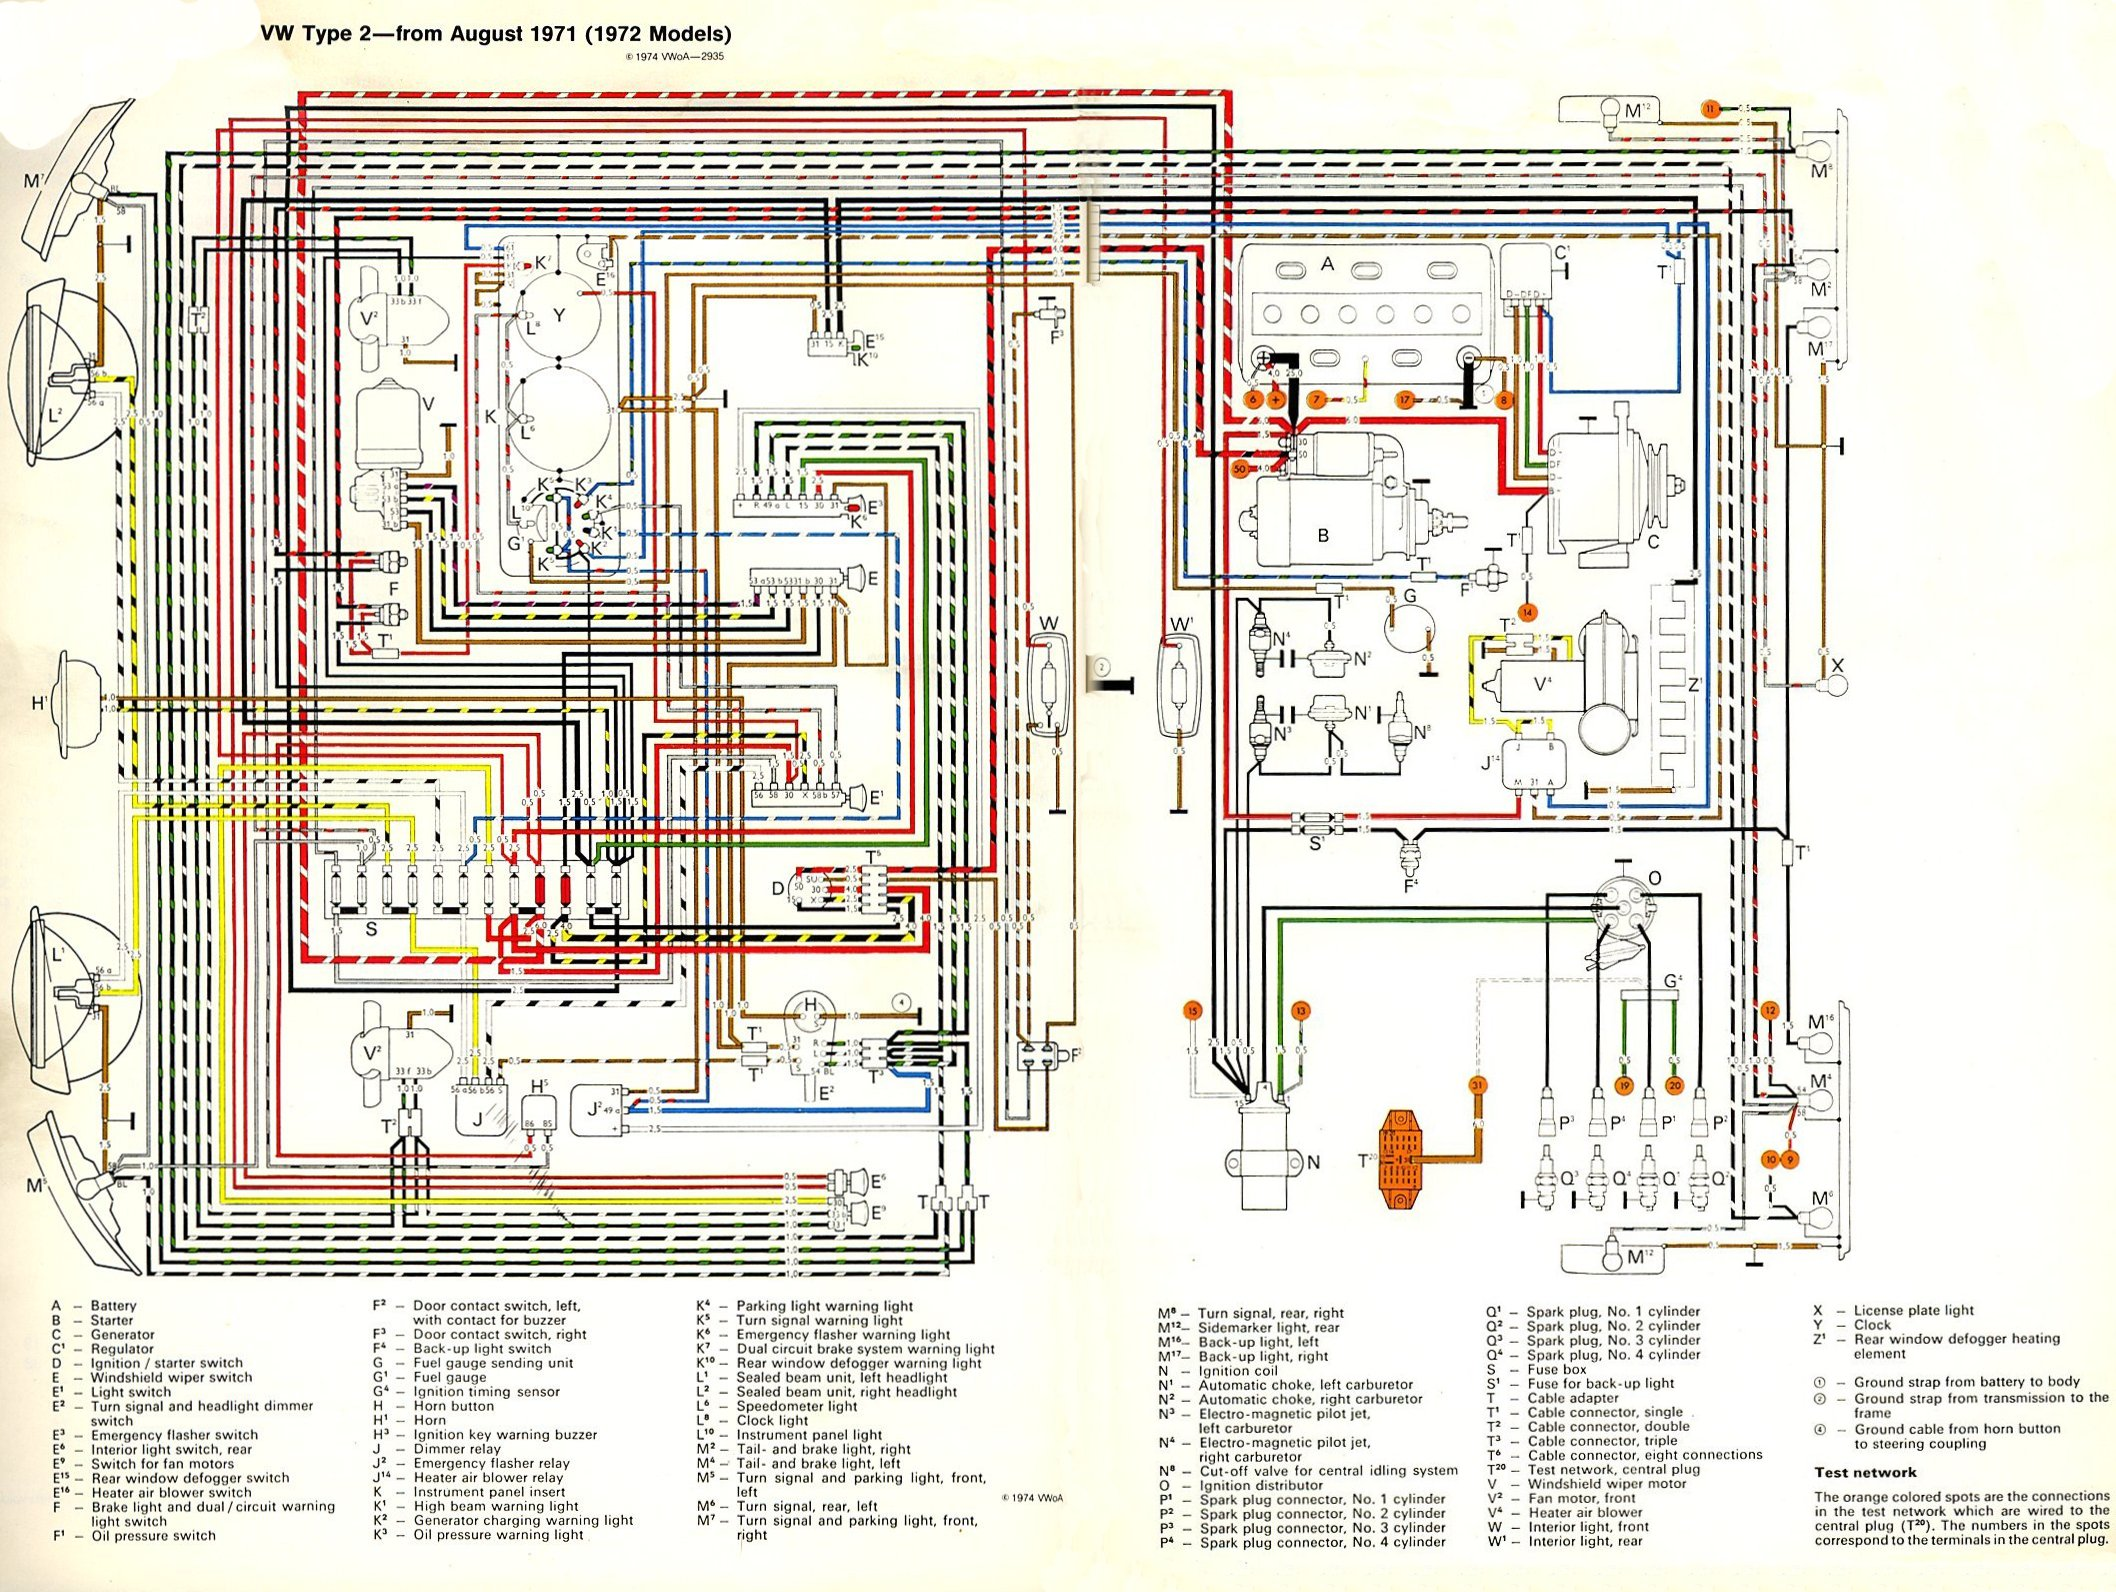 bus_1972_wiring 1977 porsche 911 wiring diagram wiring diagram simonand 1978 vw bus fuse box diagram at suagrazia.org